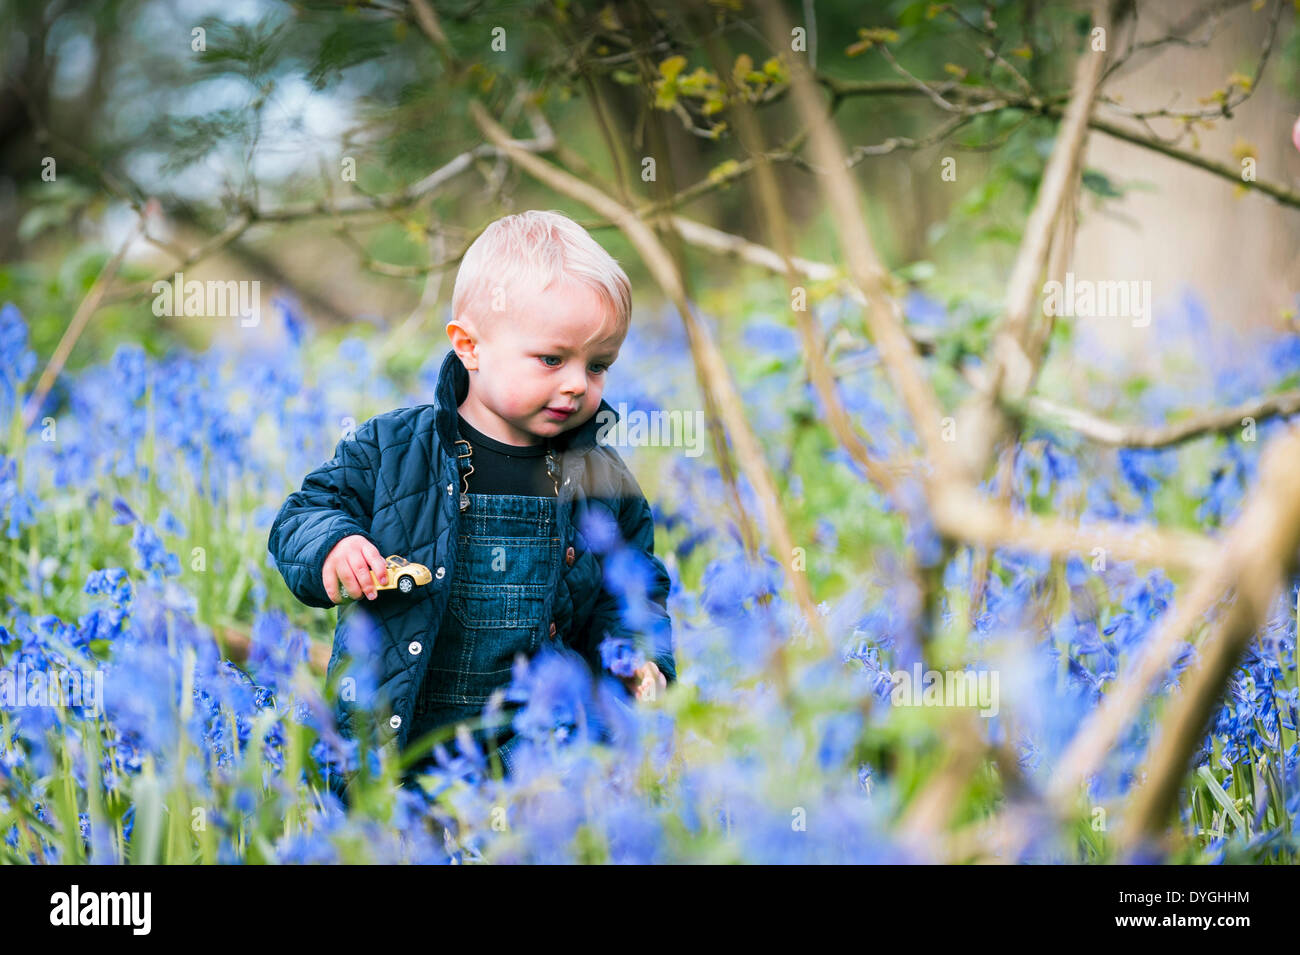 Coombe Wood, Essex, UK. April 17th 2014.   Young Chester Scammell-Webb takes the opportunity to have a closer look at a spectacular display of bluebells.  It is the first time he has ever seen so many bluebells.  Photographer:  Gordon Scammell/Alamy Live News. - Stock Image